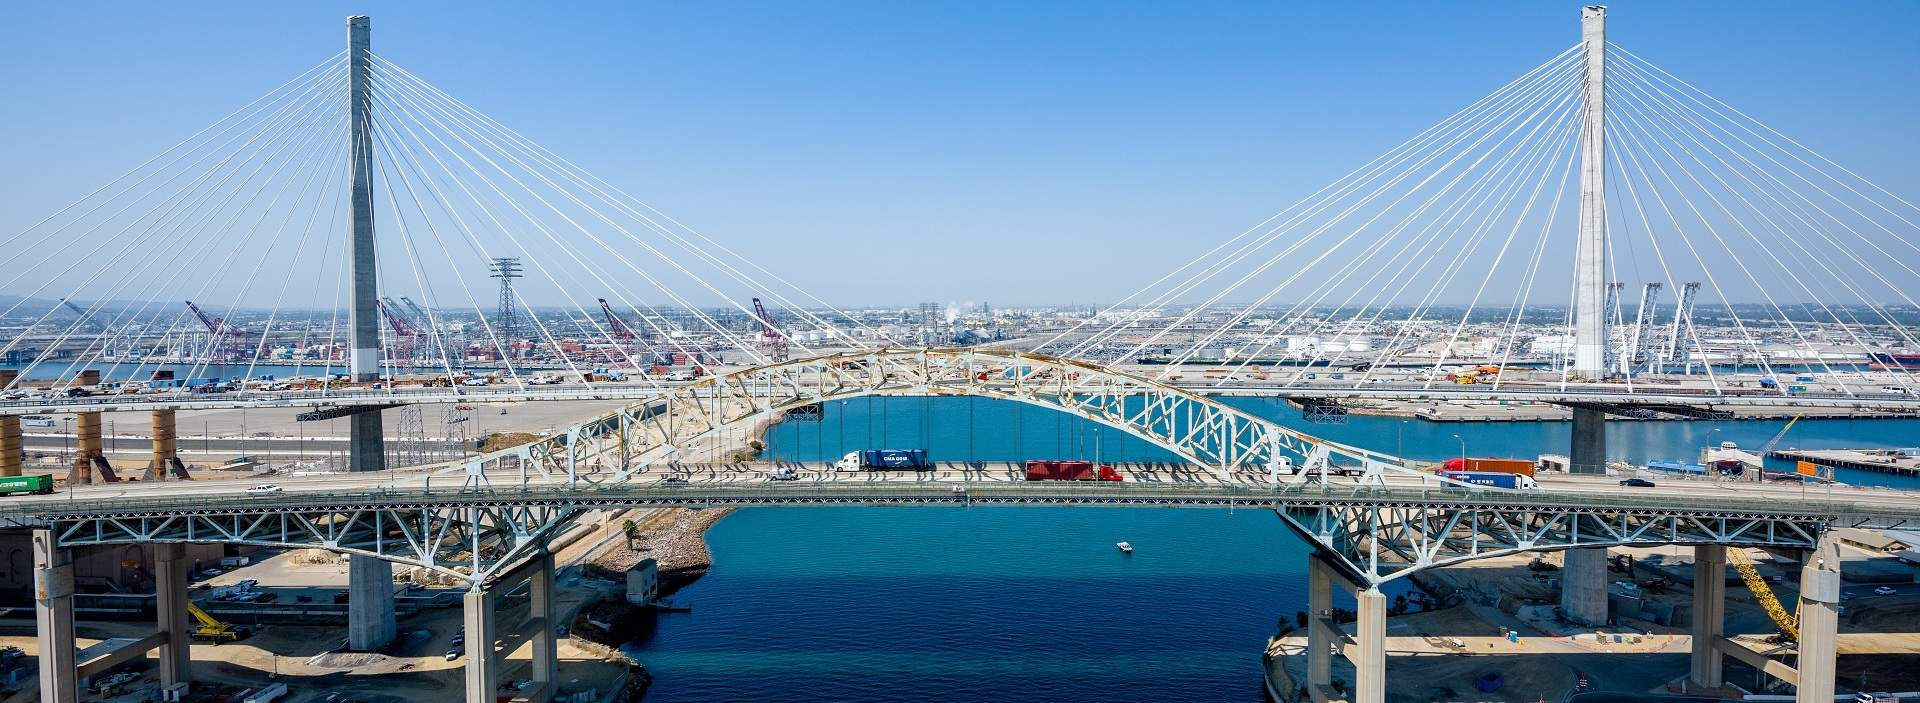 Gerald Desmond bridge in Long Beach, California, USA | WSP Project